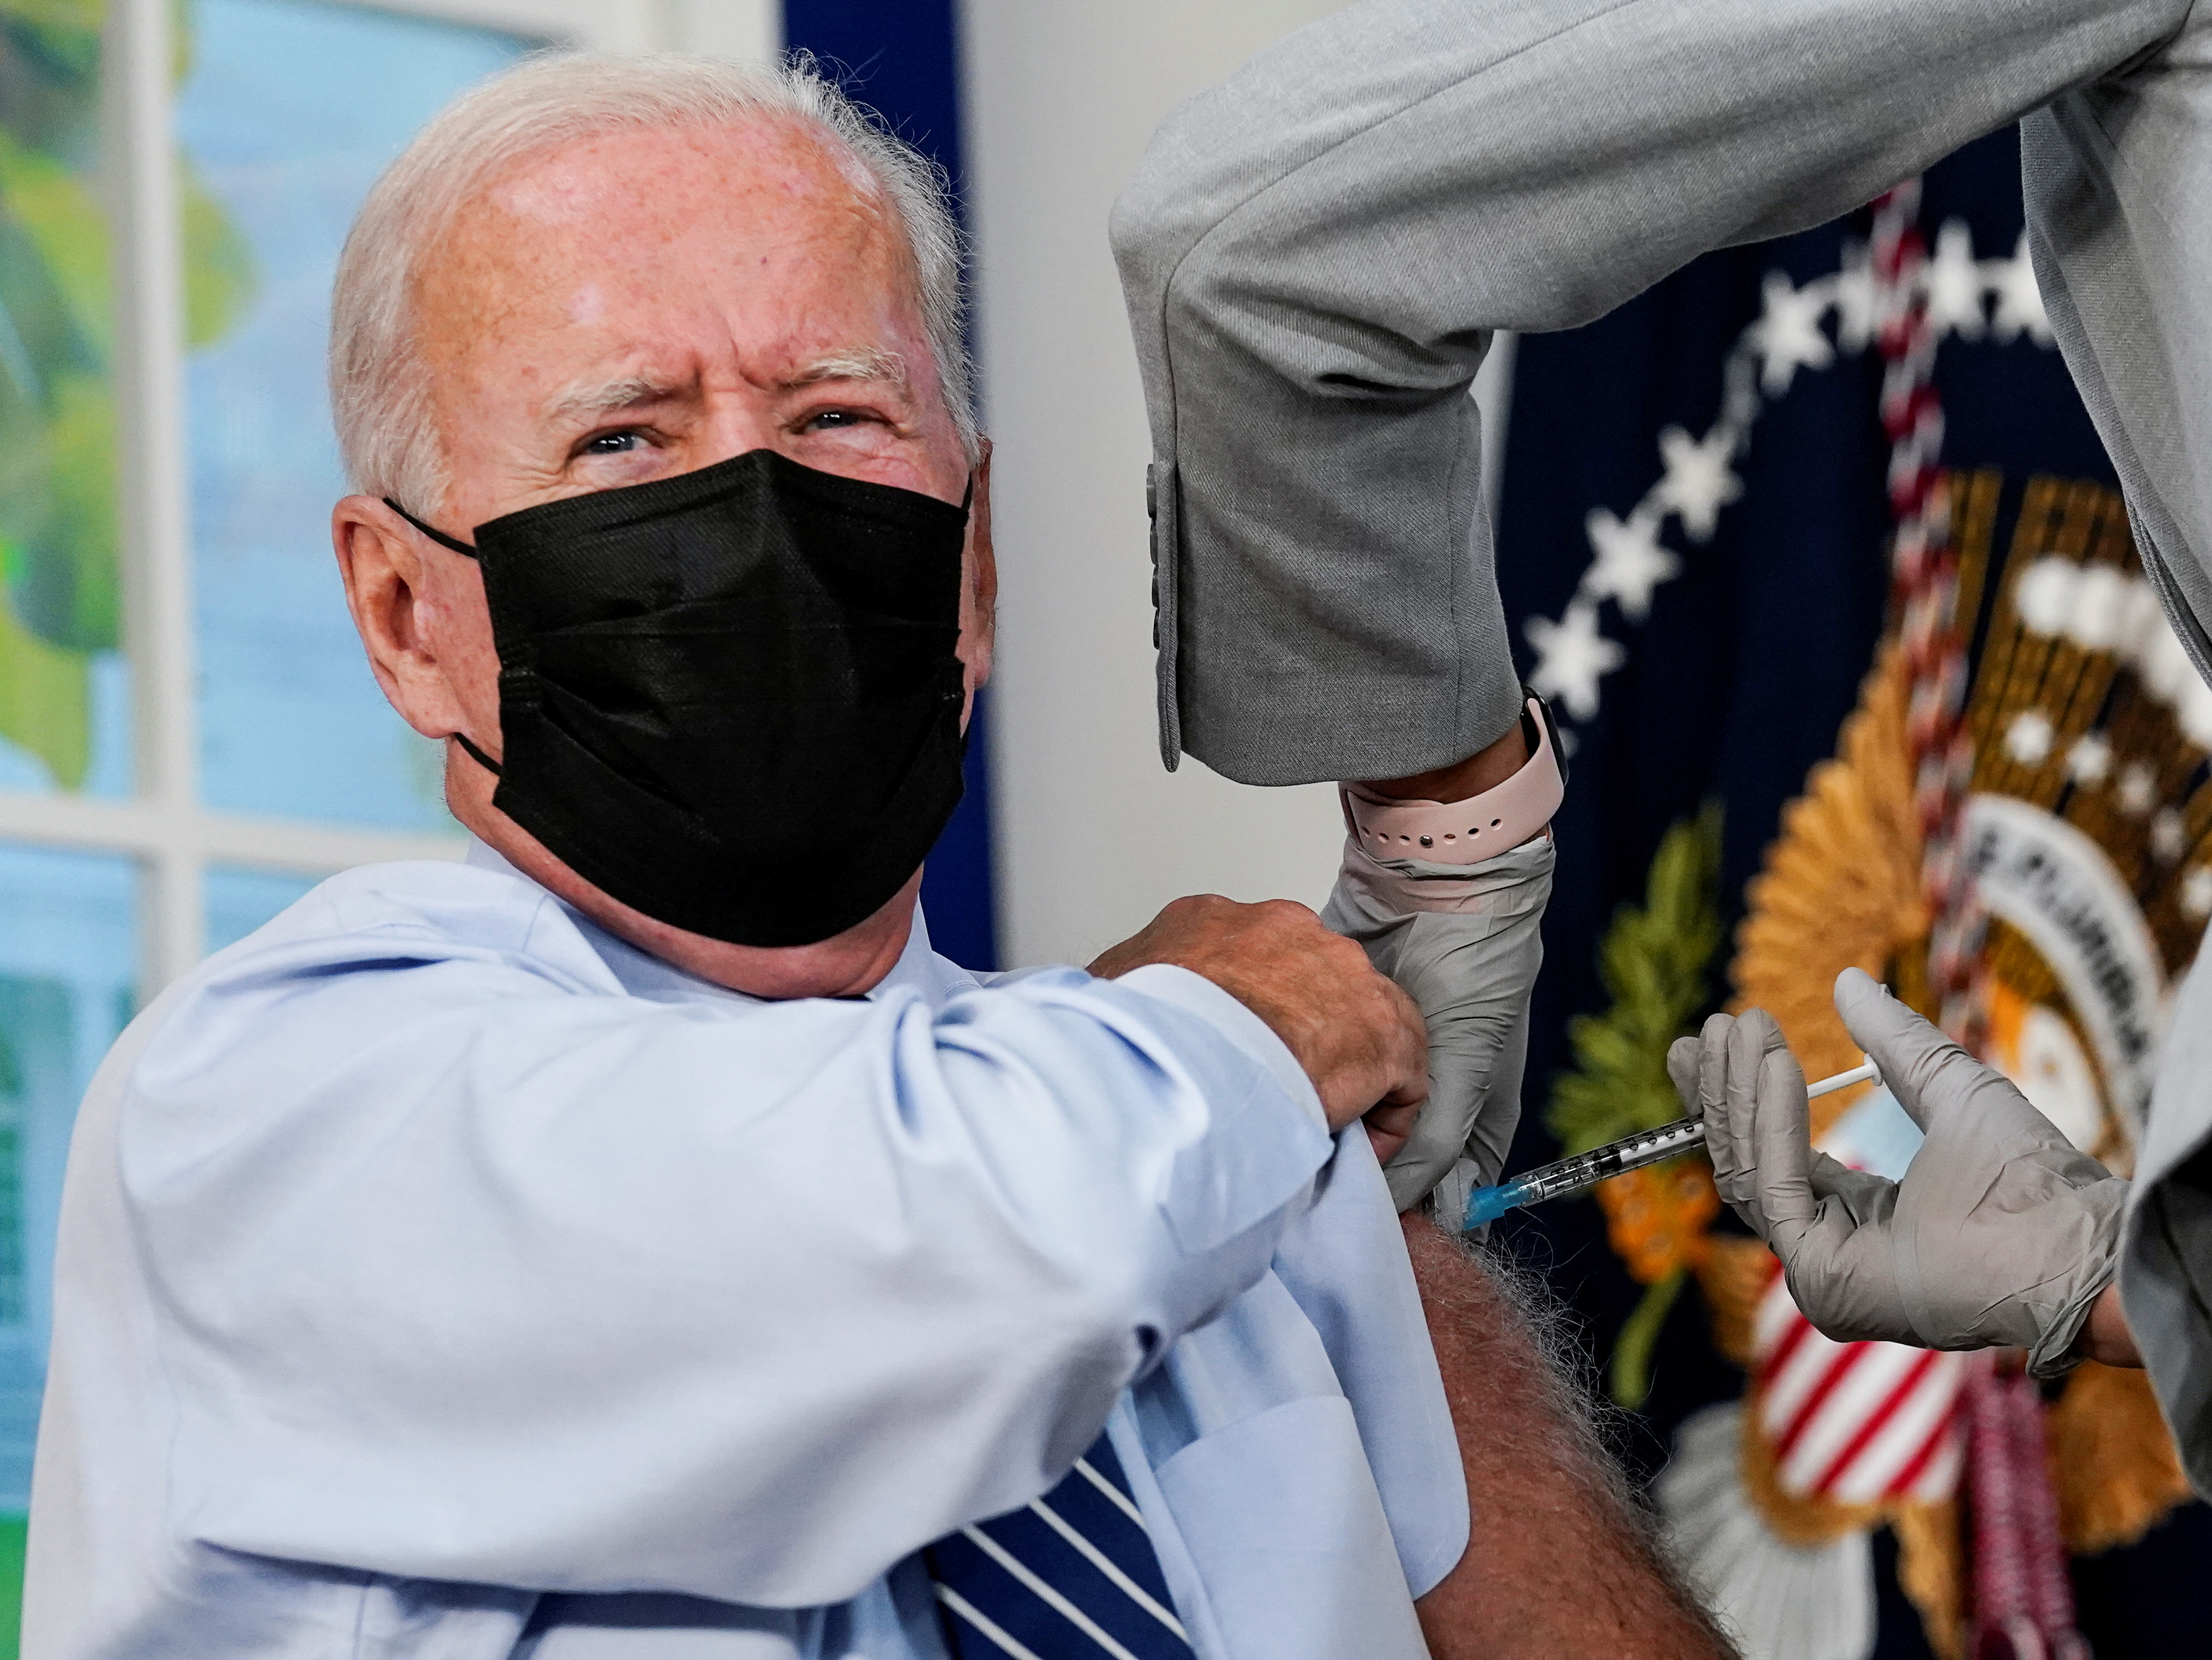 U.S. President Joe Biden receives his coronavirus disease (COVID-19) booster vaccination in the Eisenhower Executive Office Building's South Court Auditorium at the White House in Washington, U.S., September 27, 2021. REUTERS/Kevin Lamarque